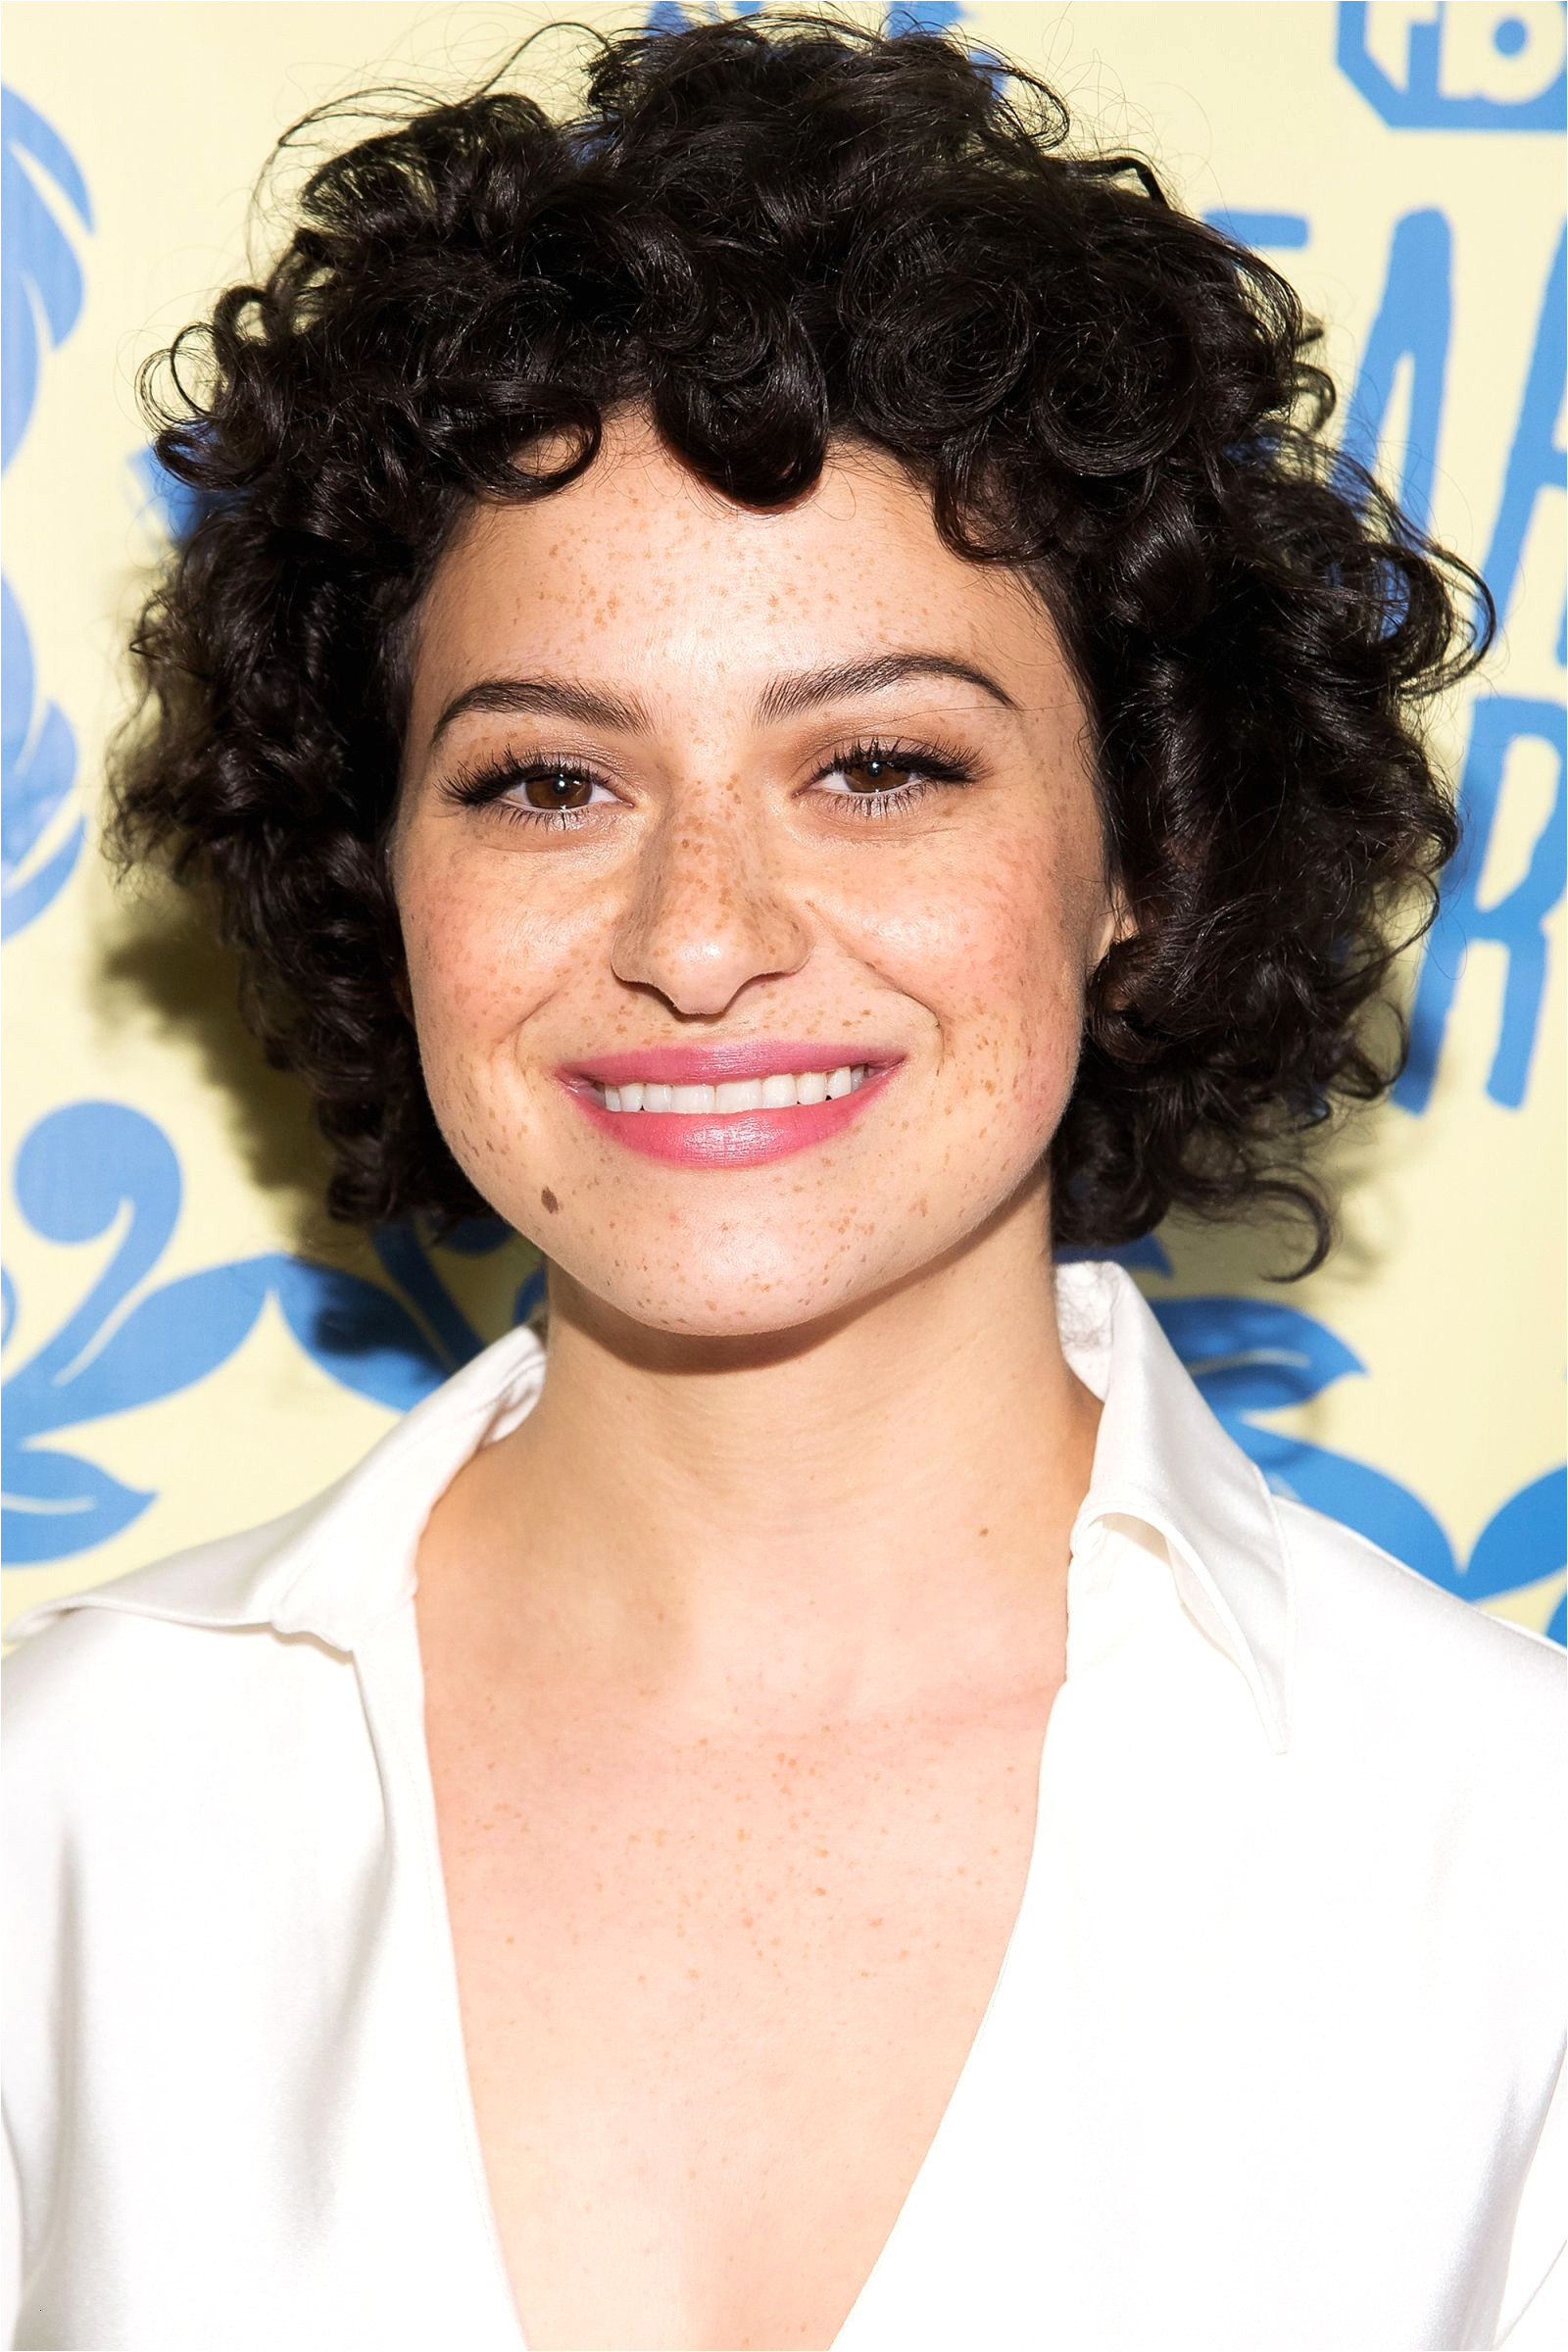 Curly Hair Hairstyles For Girls Inspirational Names Hairstyles New Very Curly Hairstyles Fresh Curly Hair 0d